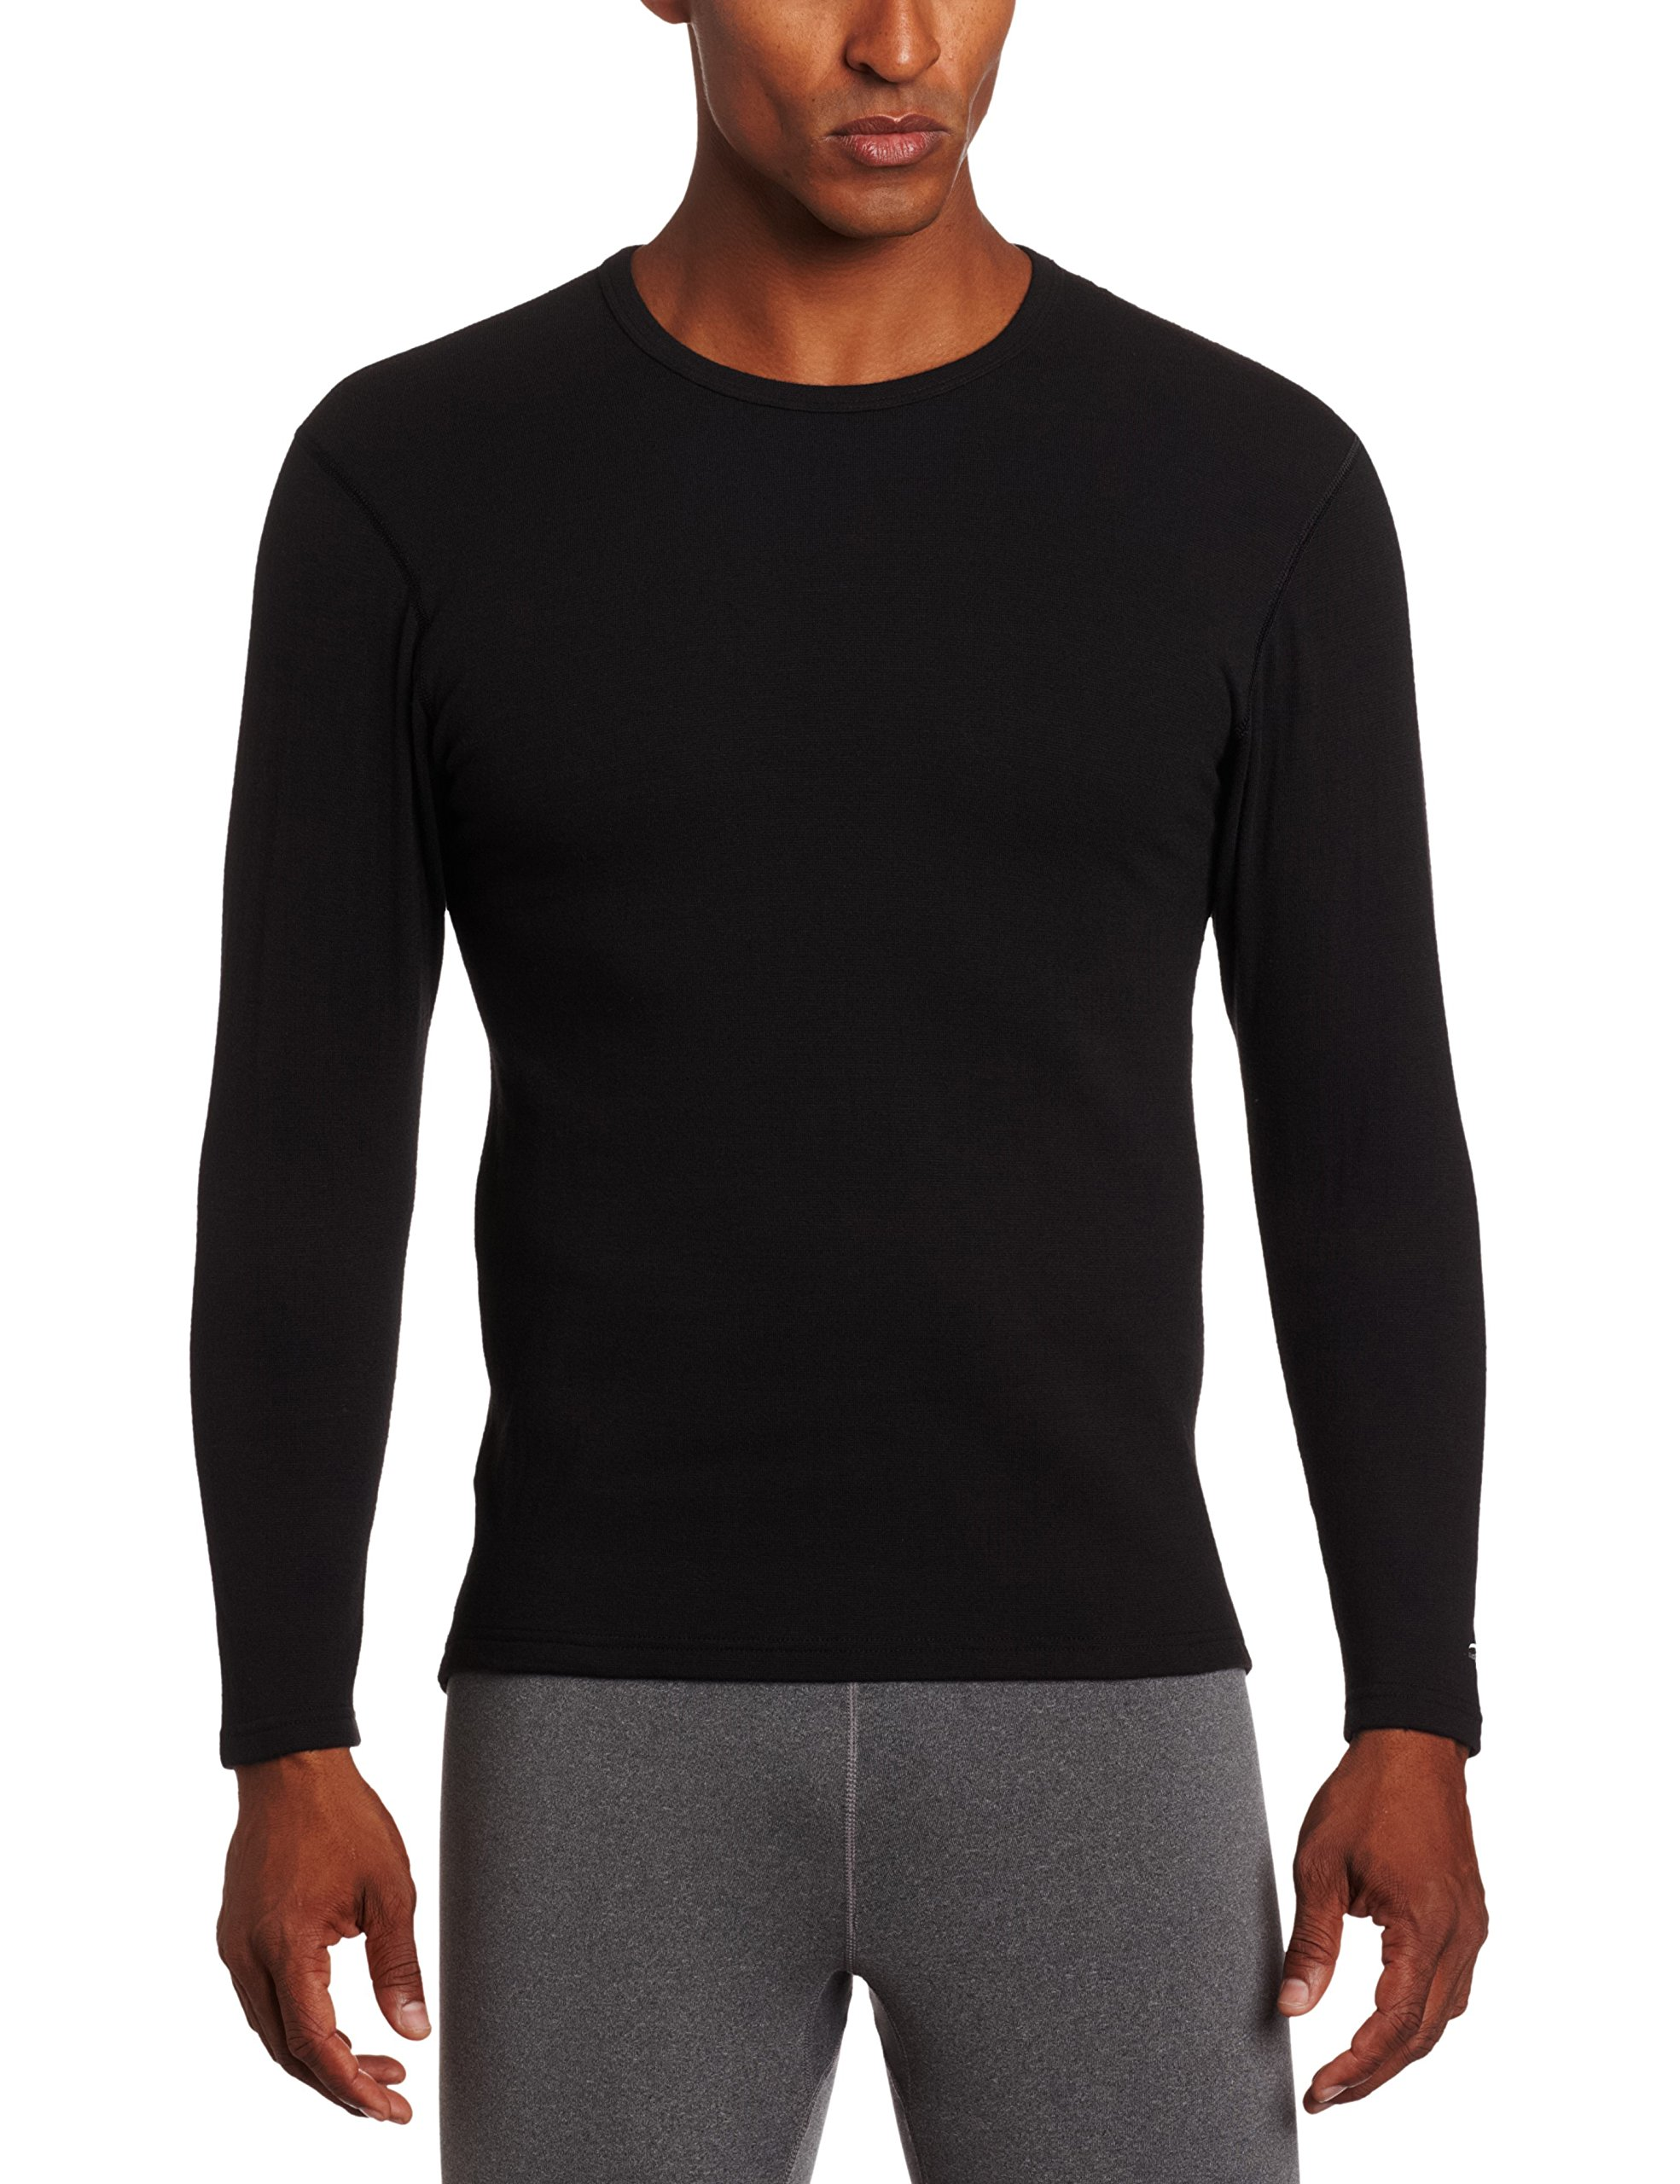 Duofold Men's Heavy Weight Double Layer Thermal Shirt, Black, Large by Duofold